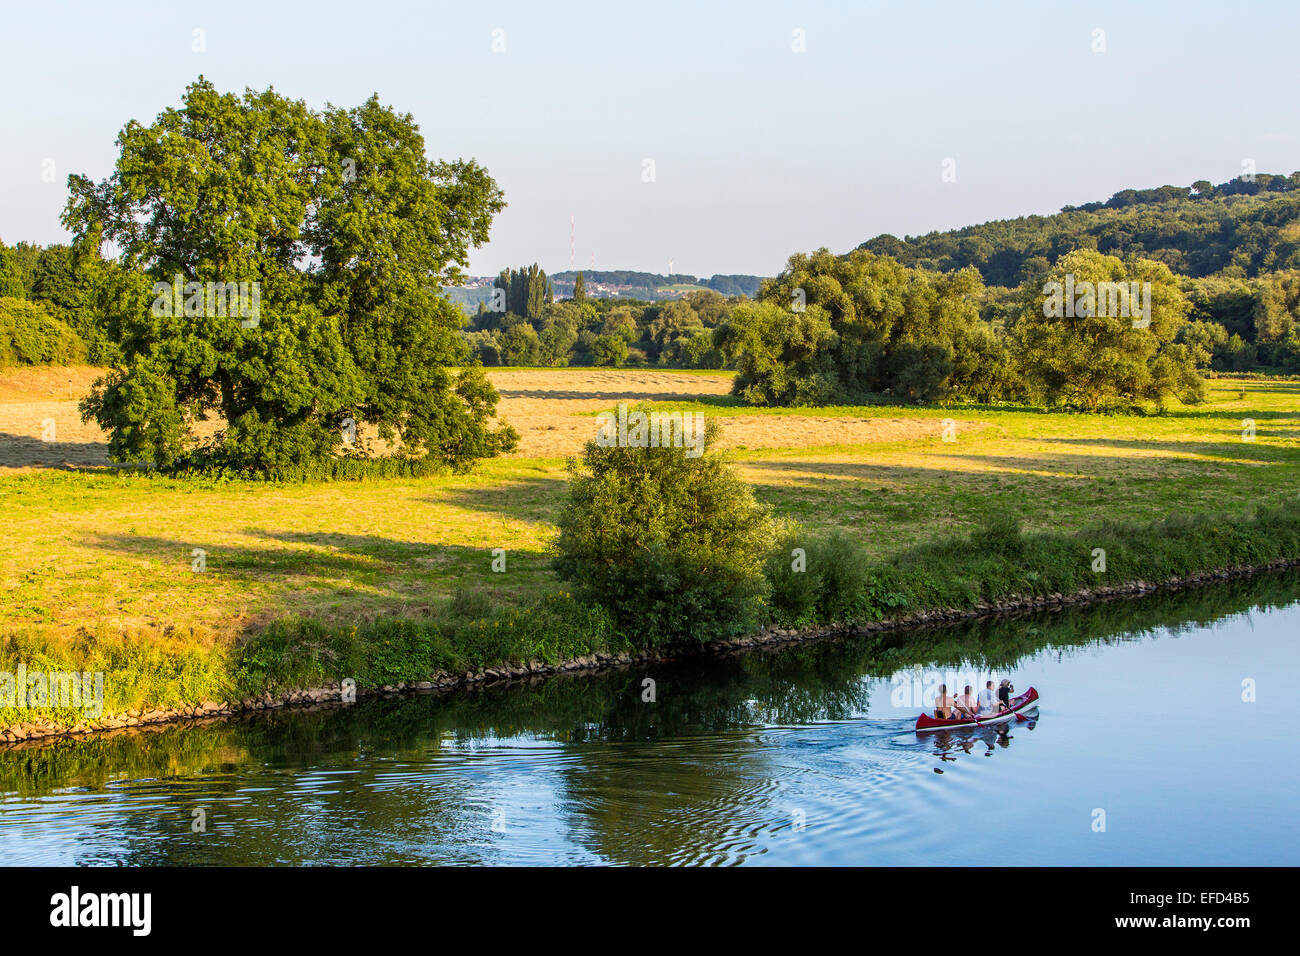 Canoe trip on river Ruhr, Essen, Germany, - Stock Image